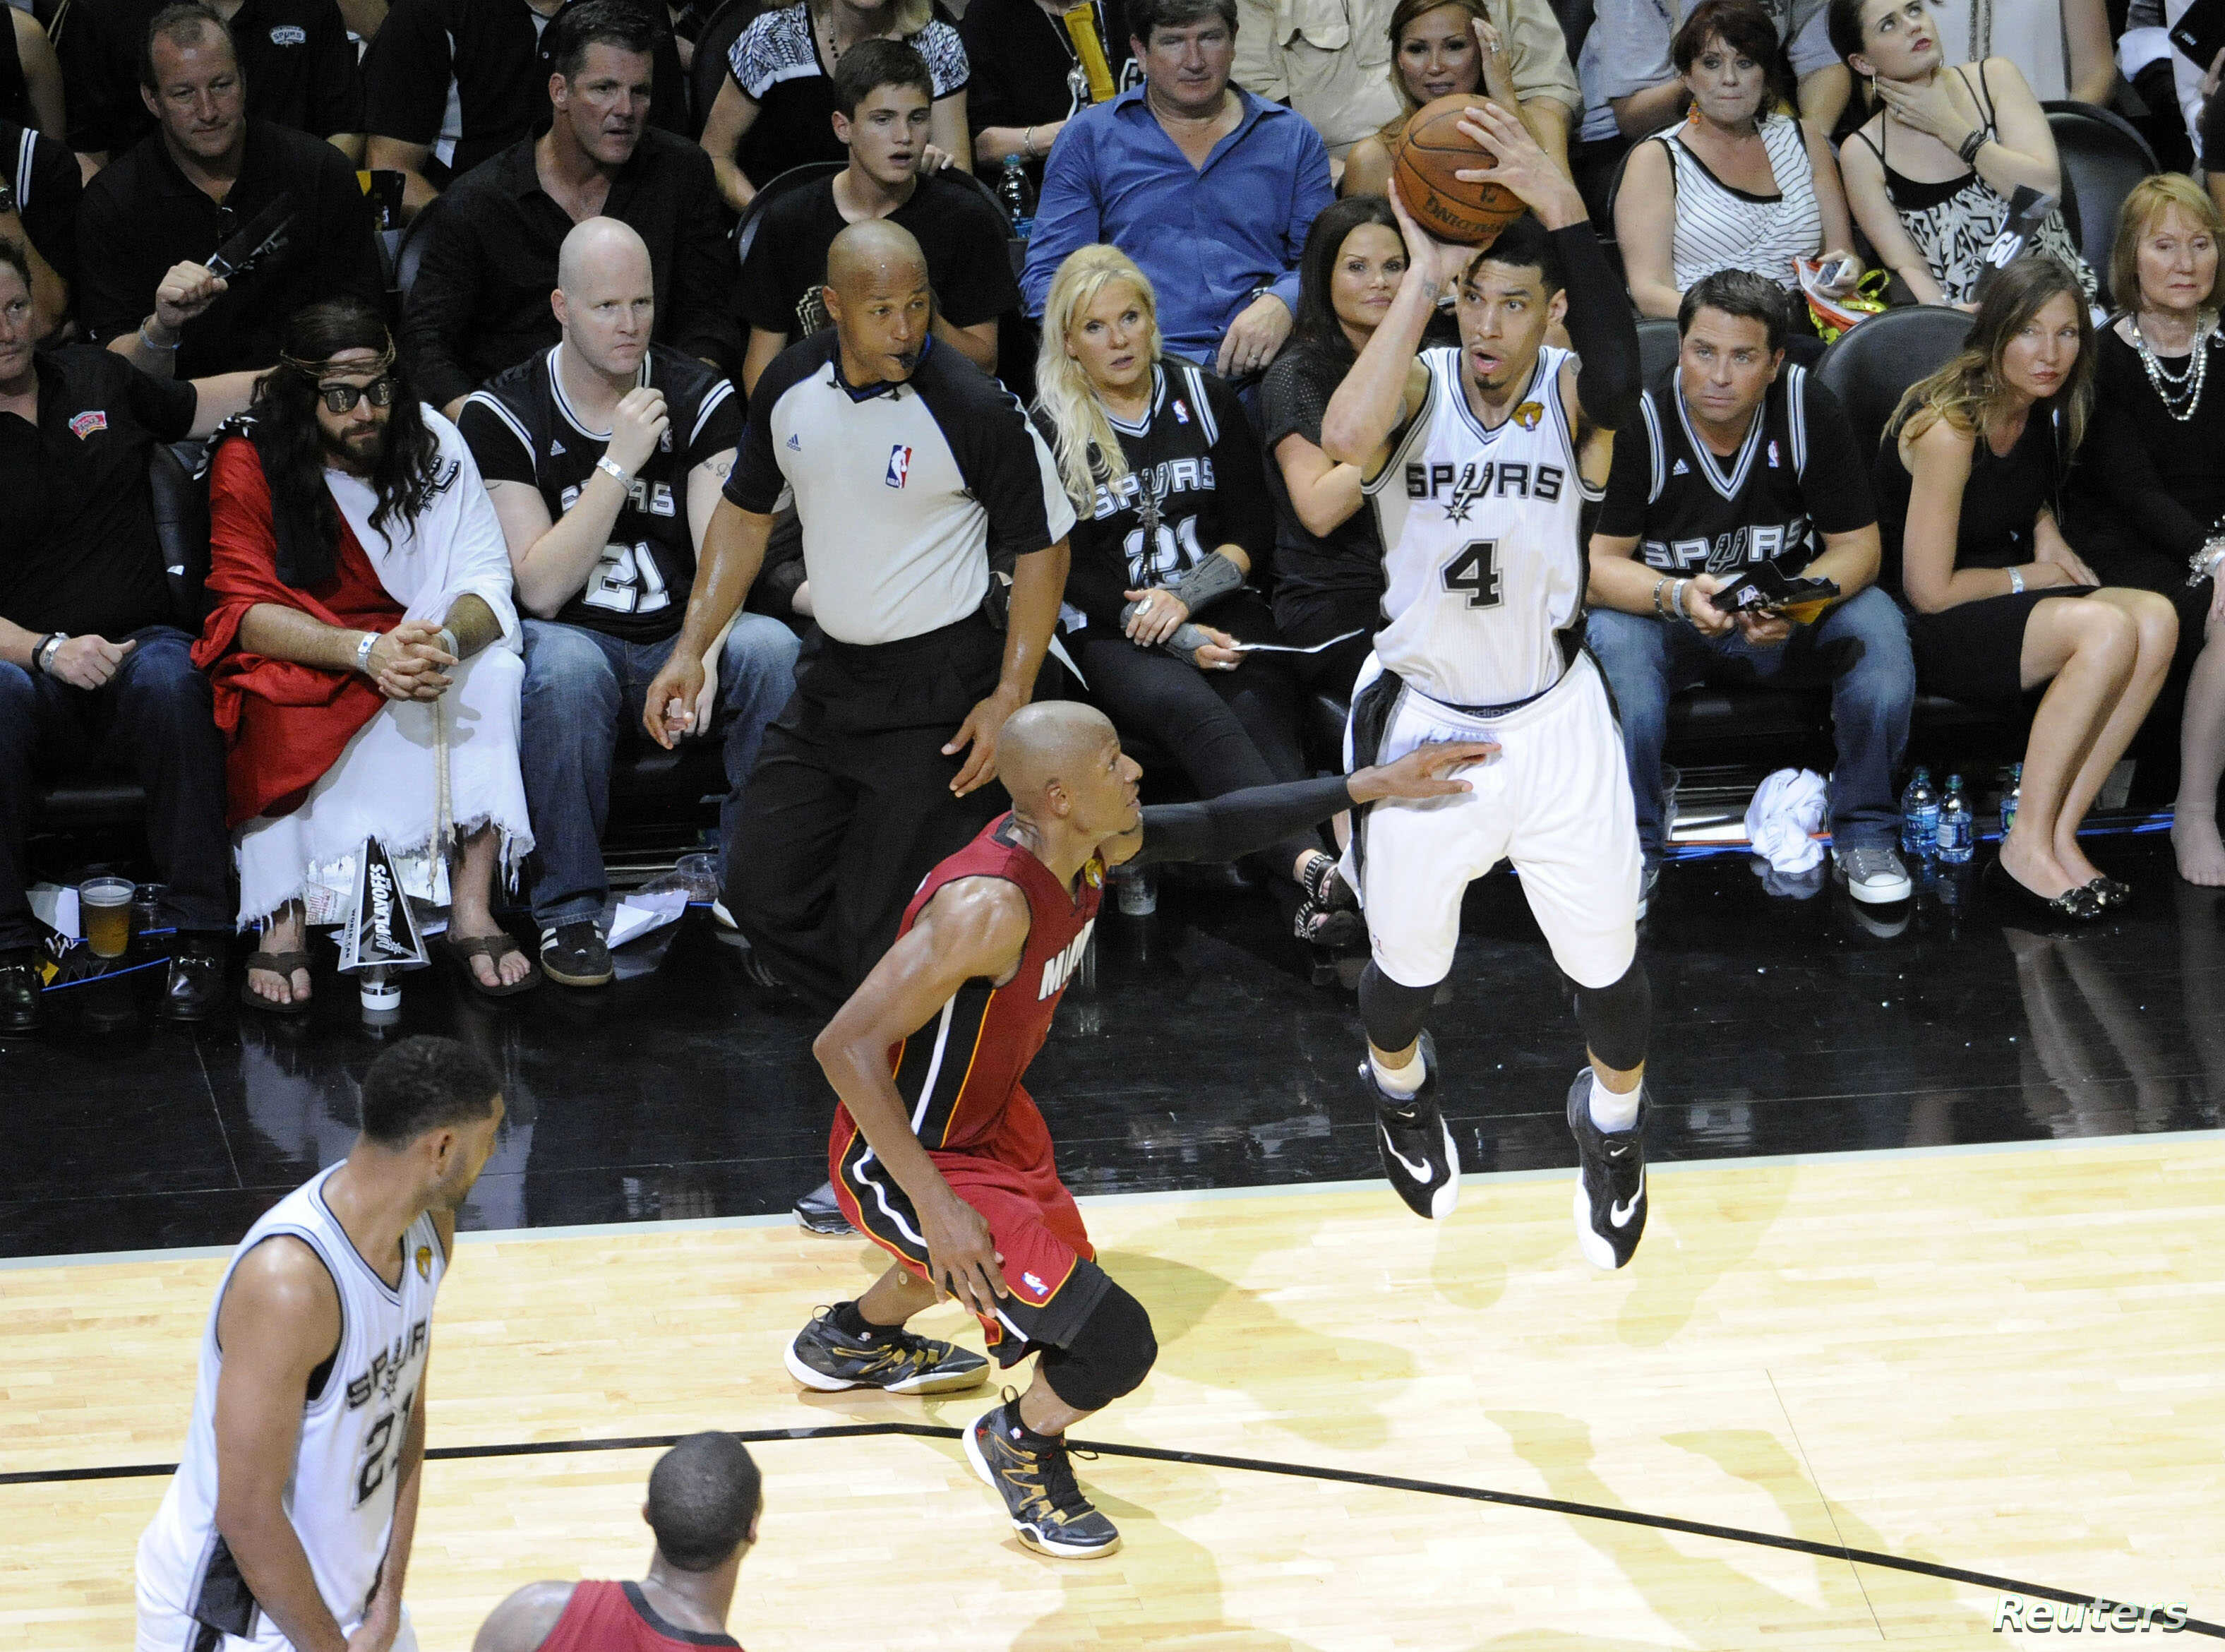 Spurs Outlast Miami Heat In Nba Finals Opener Voice Of America English